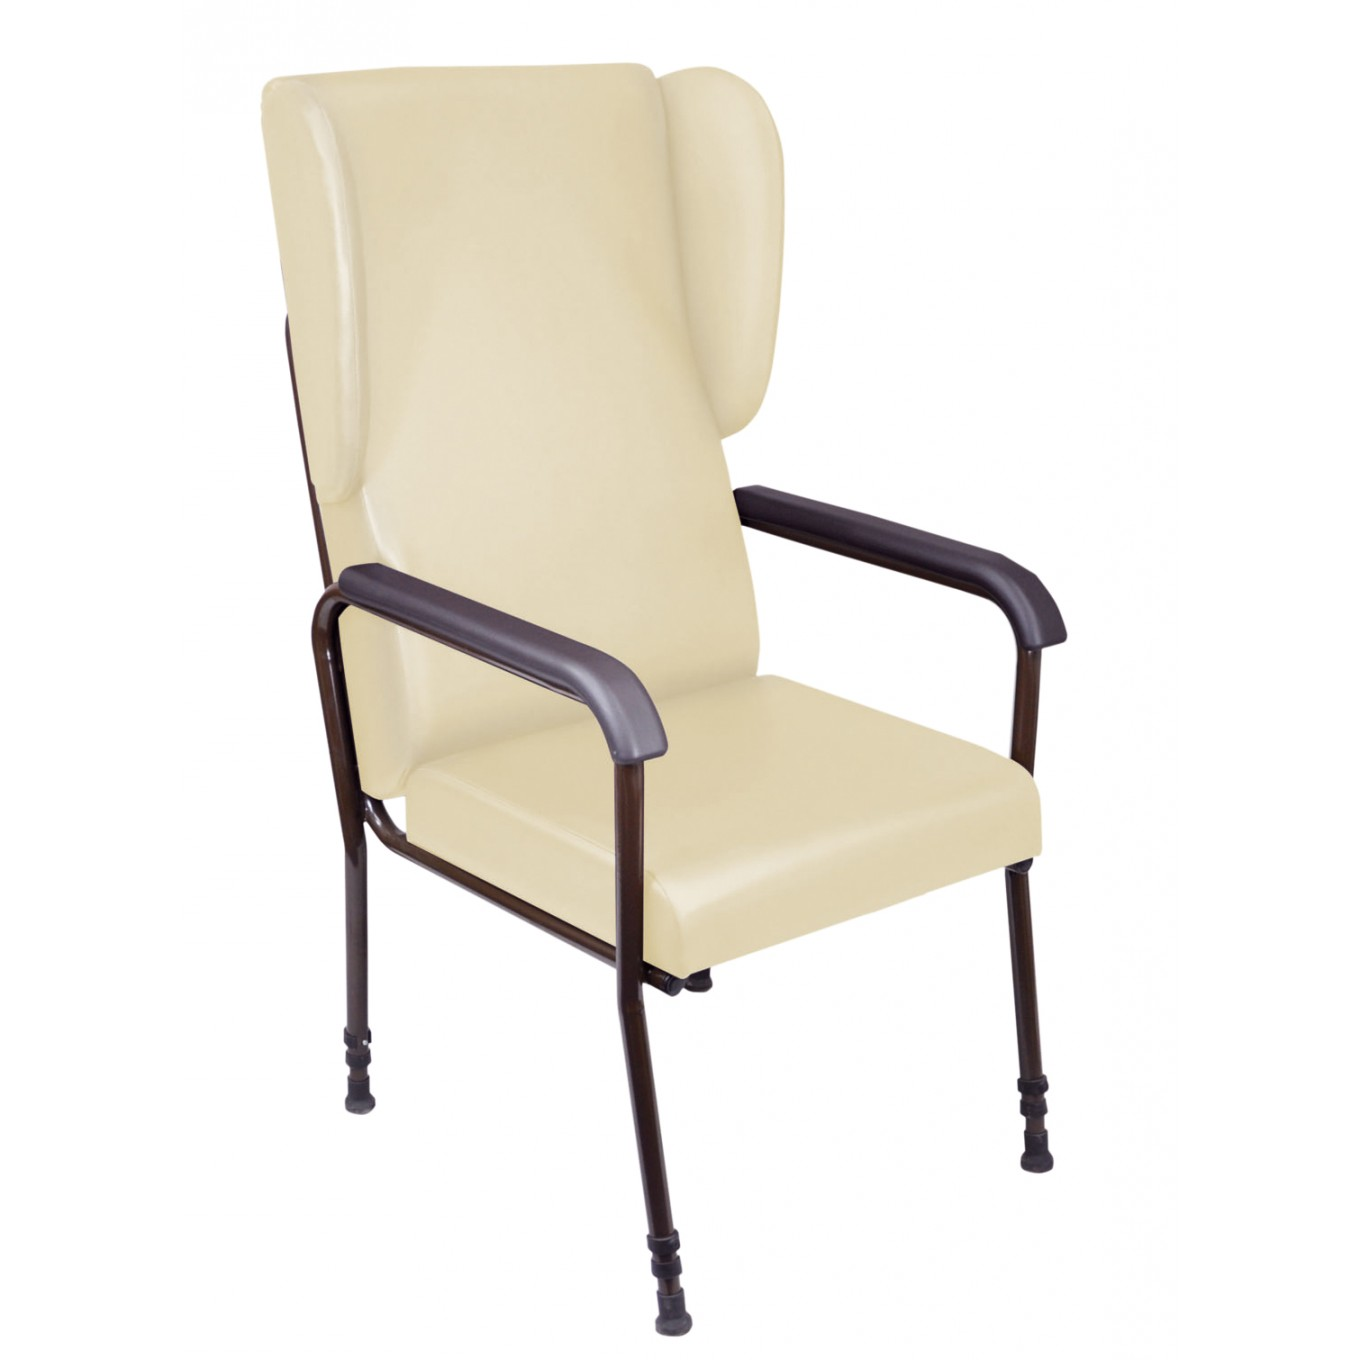 Chelsfield High Back Chair - Available to see in Menai Bridge & Valley